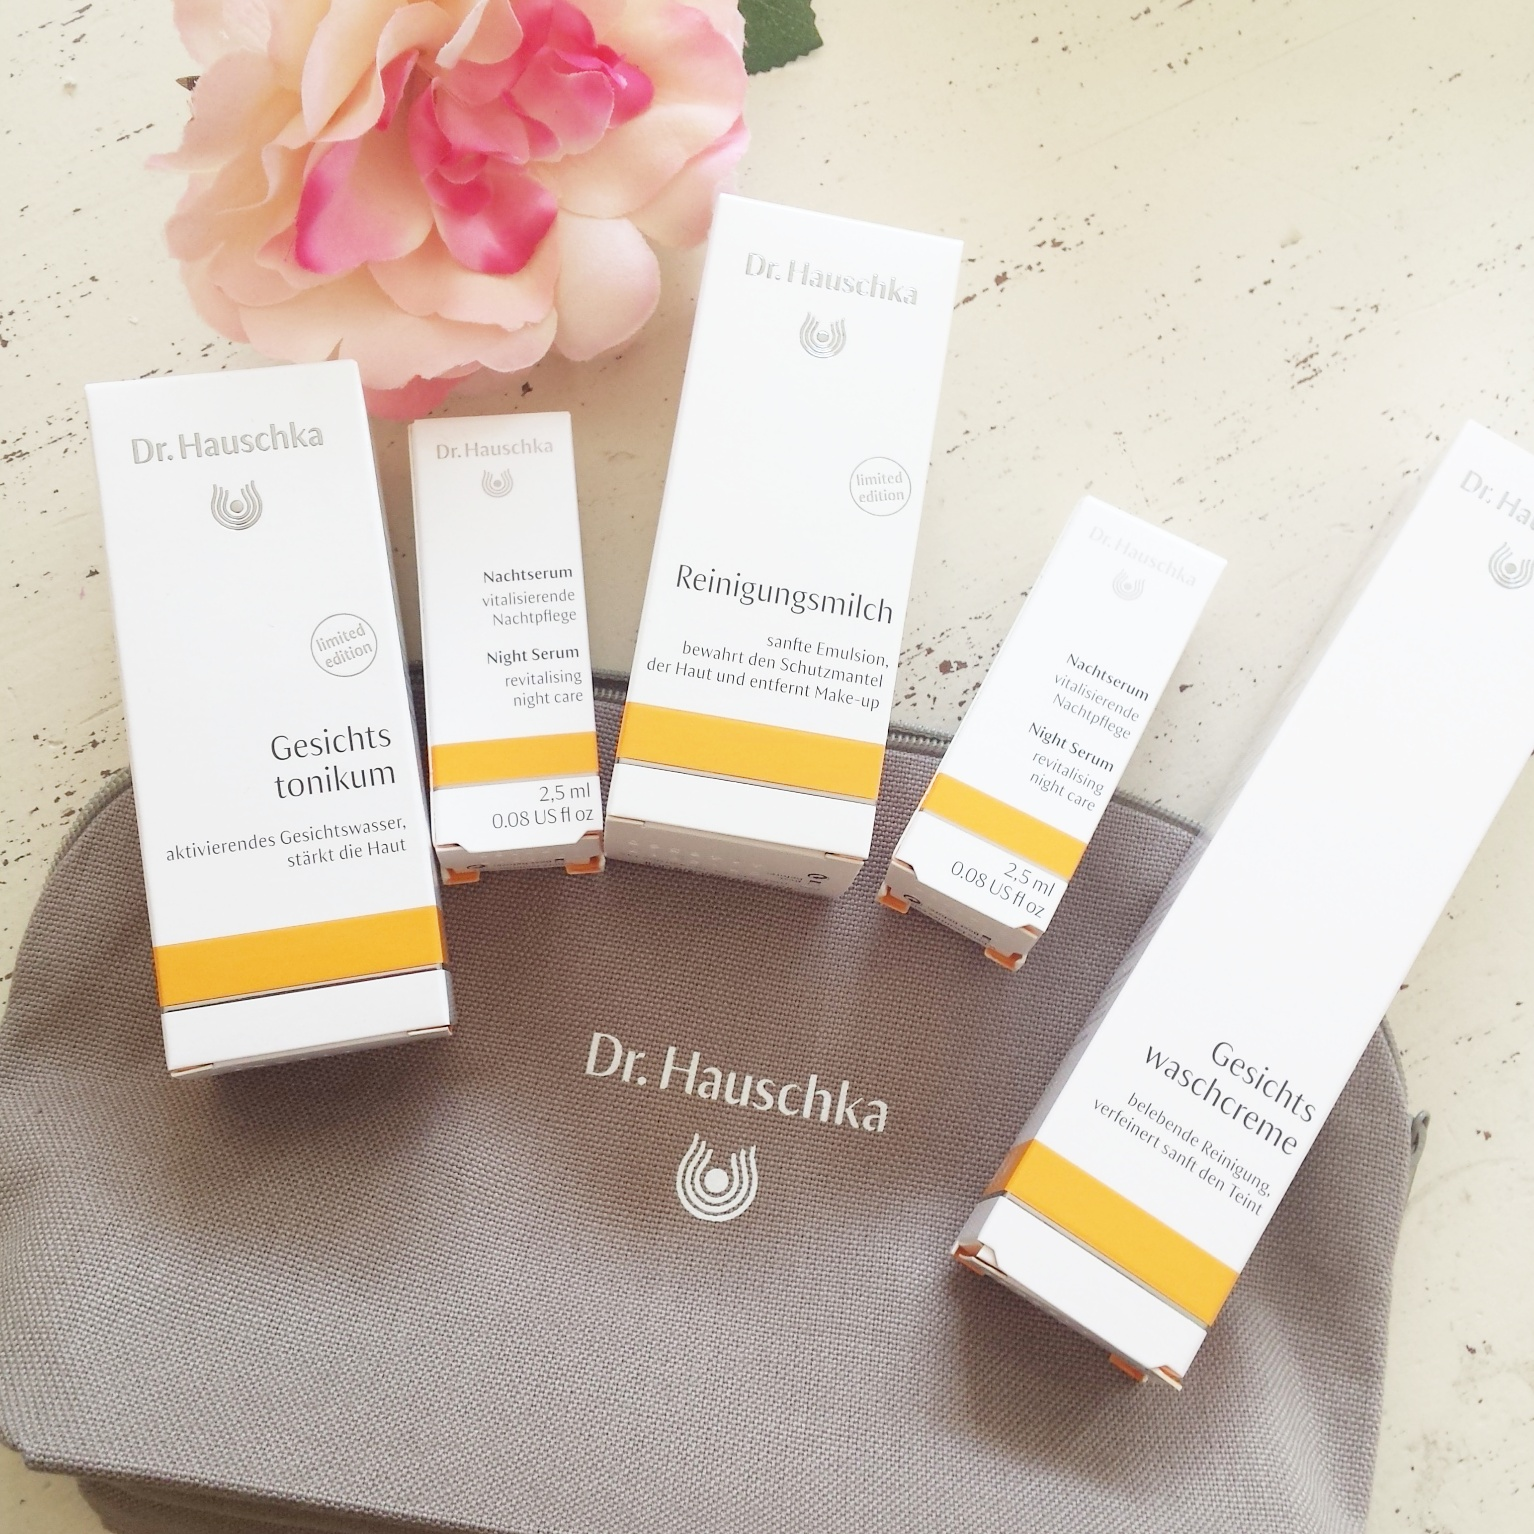 summer nights by dr hauschka mint beauty. Black Bedroom Furniture Sets. Home Design Ideas